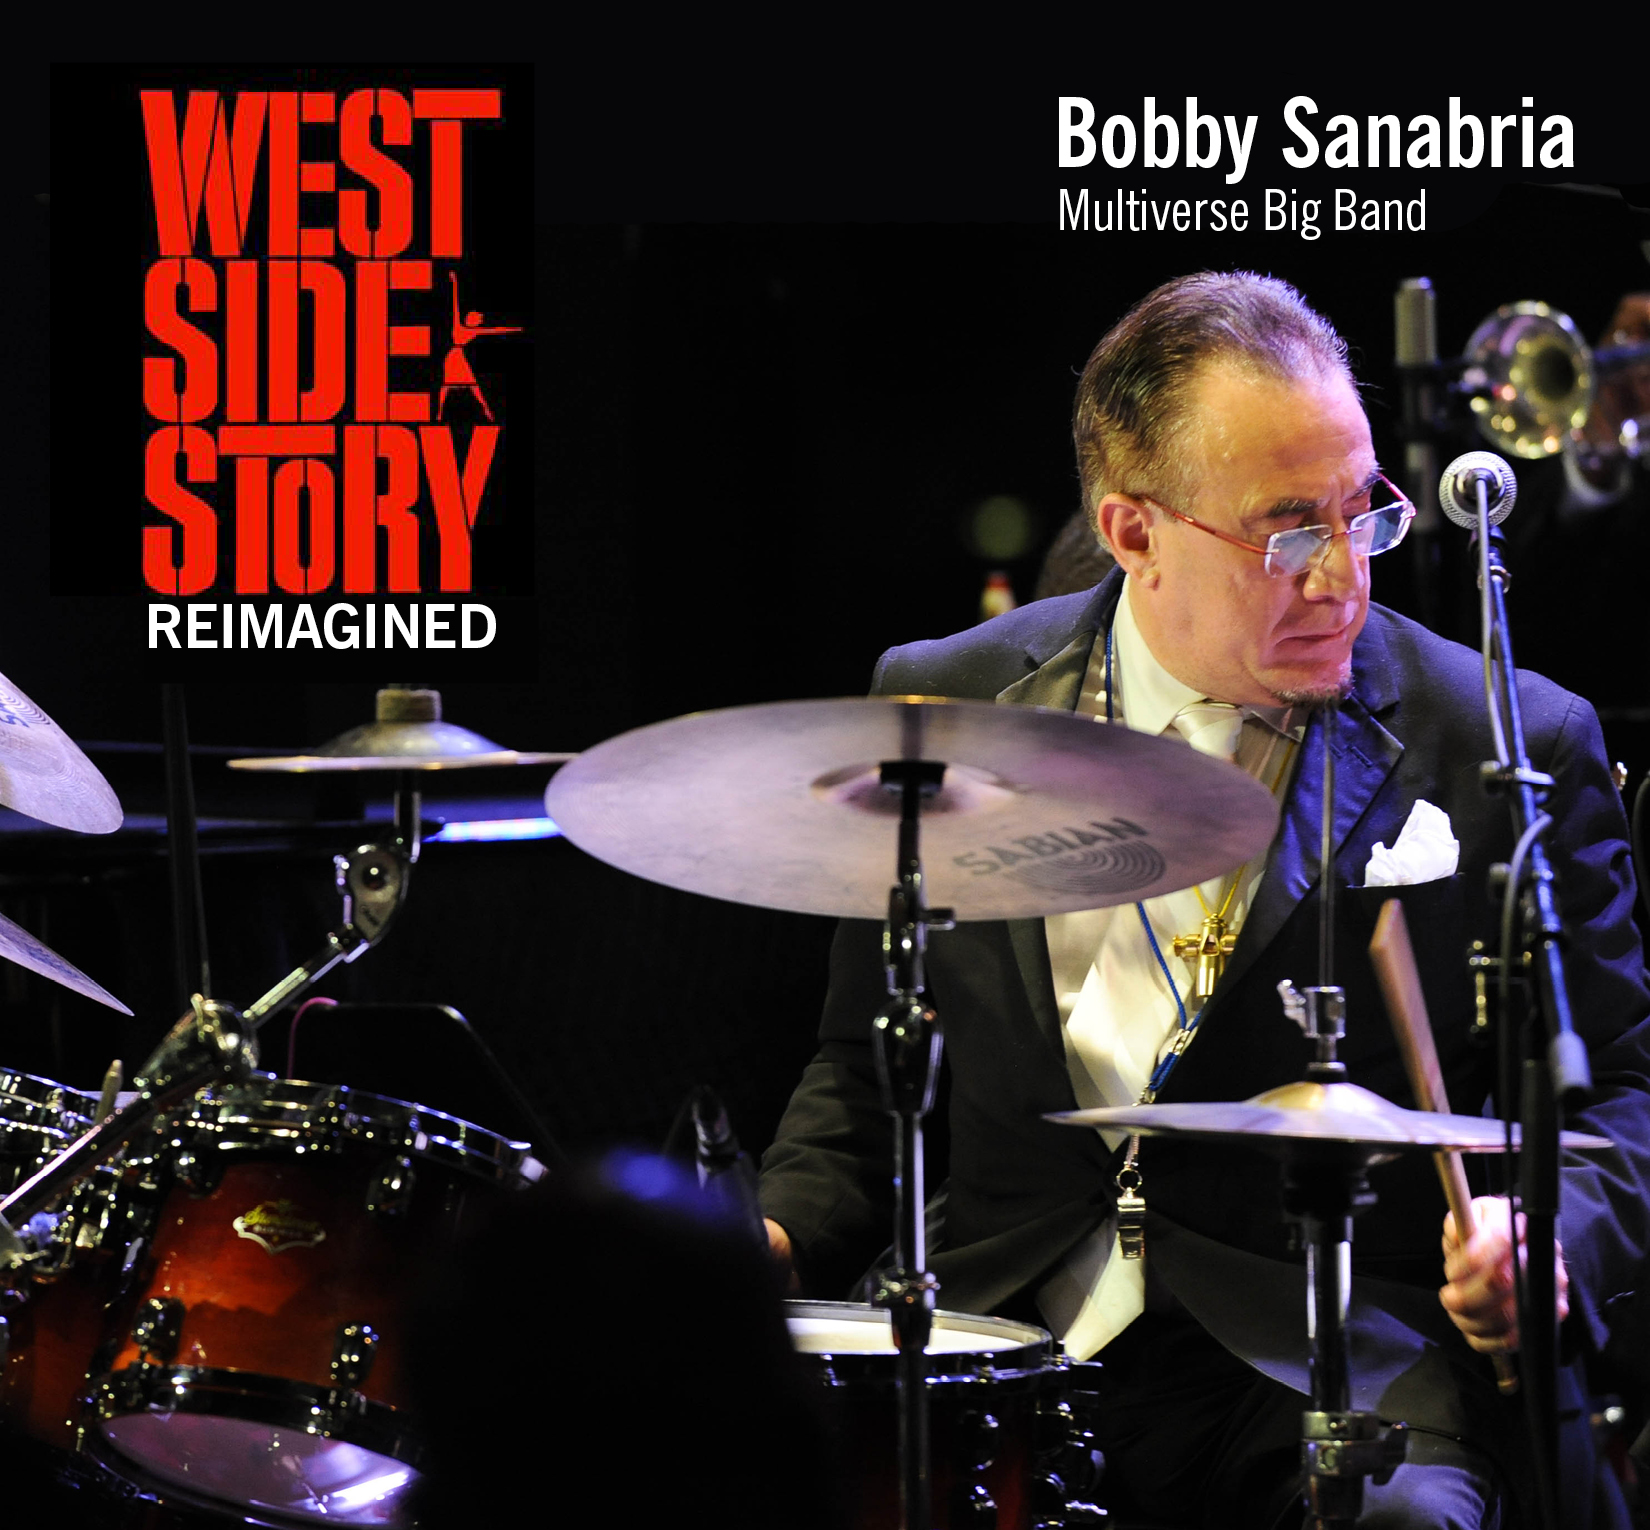 The Jazz Journalists Association has announced the 2019 JJA Award forRecord of the Year is West Side Story Reimagined